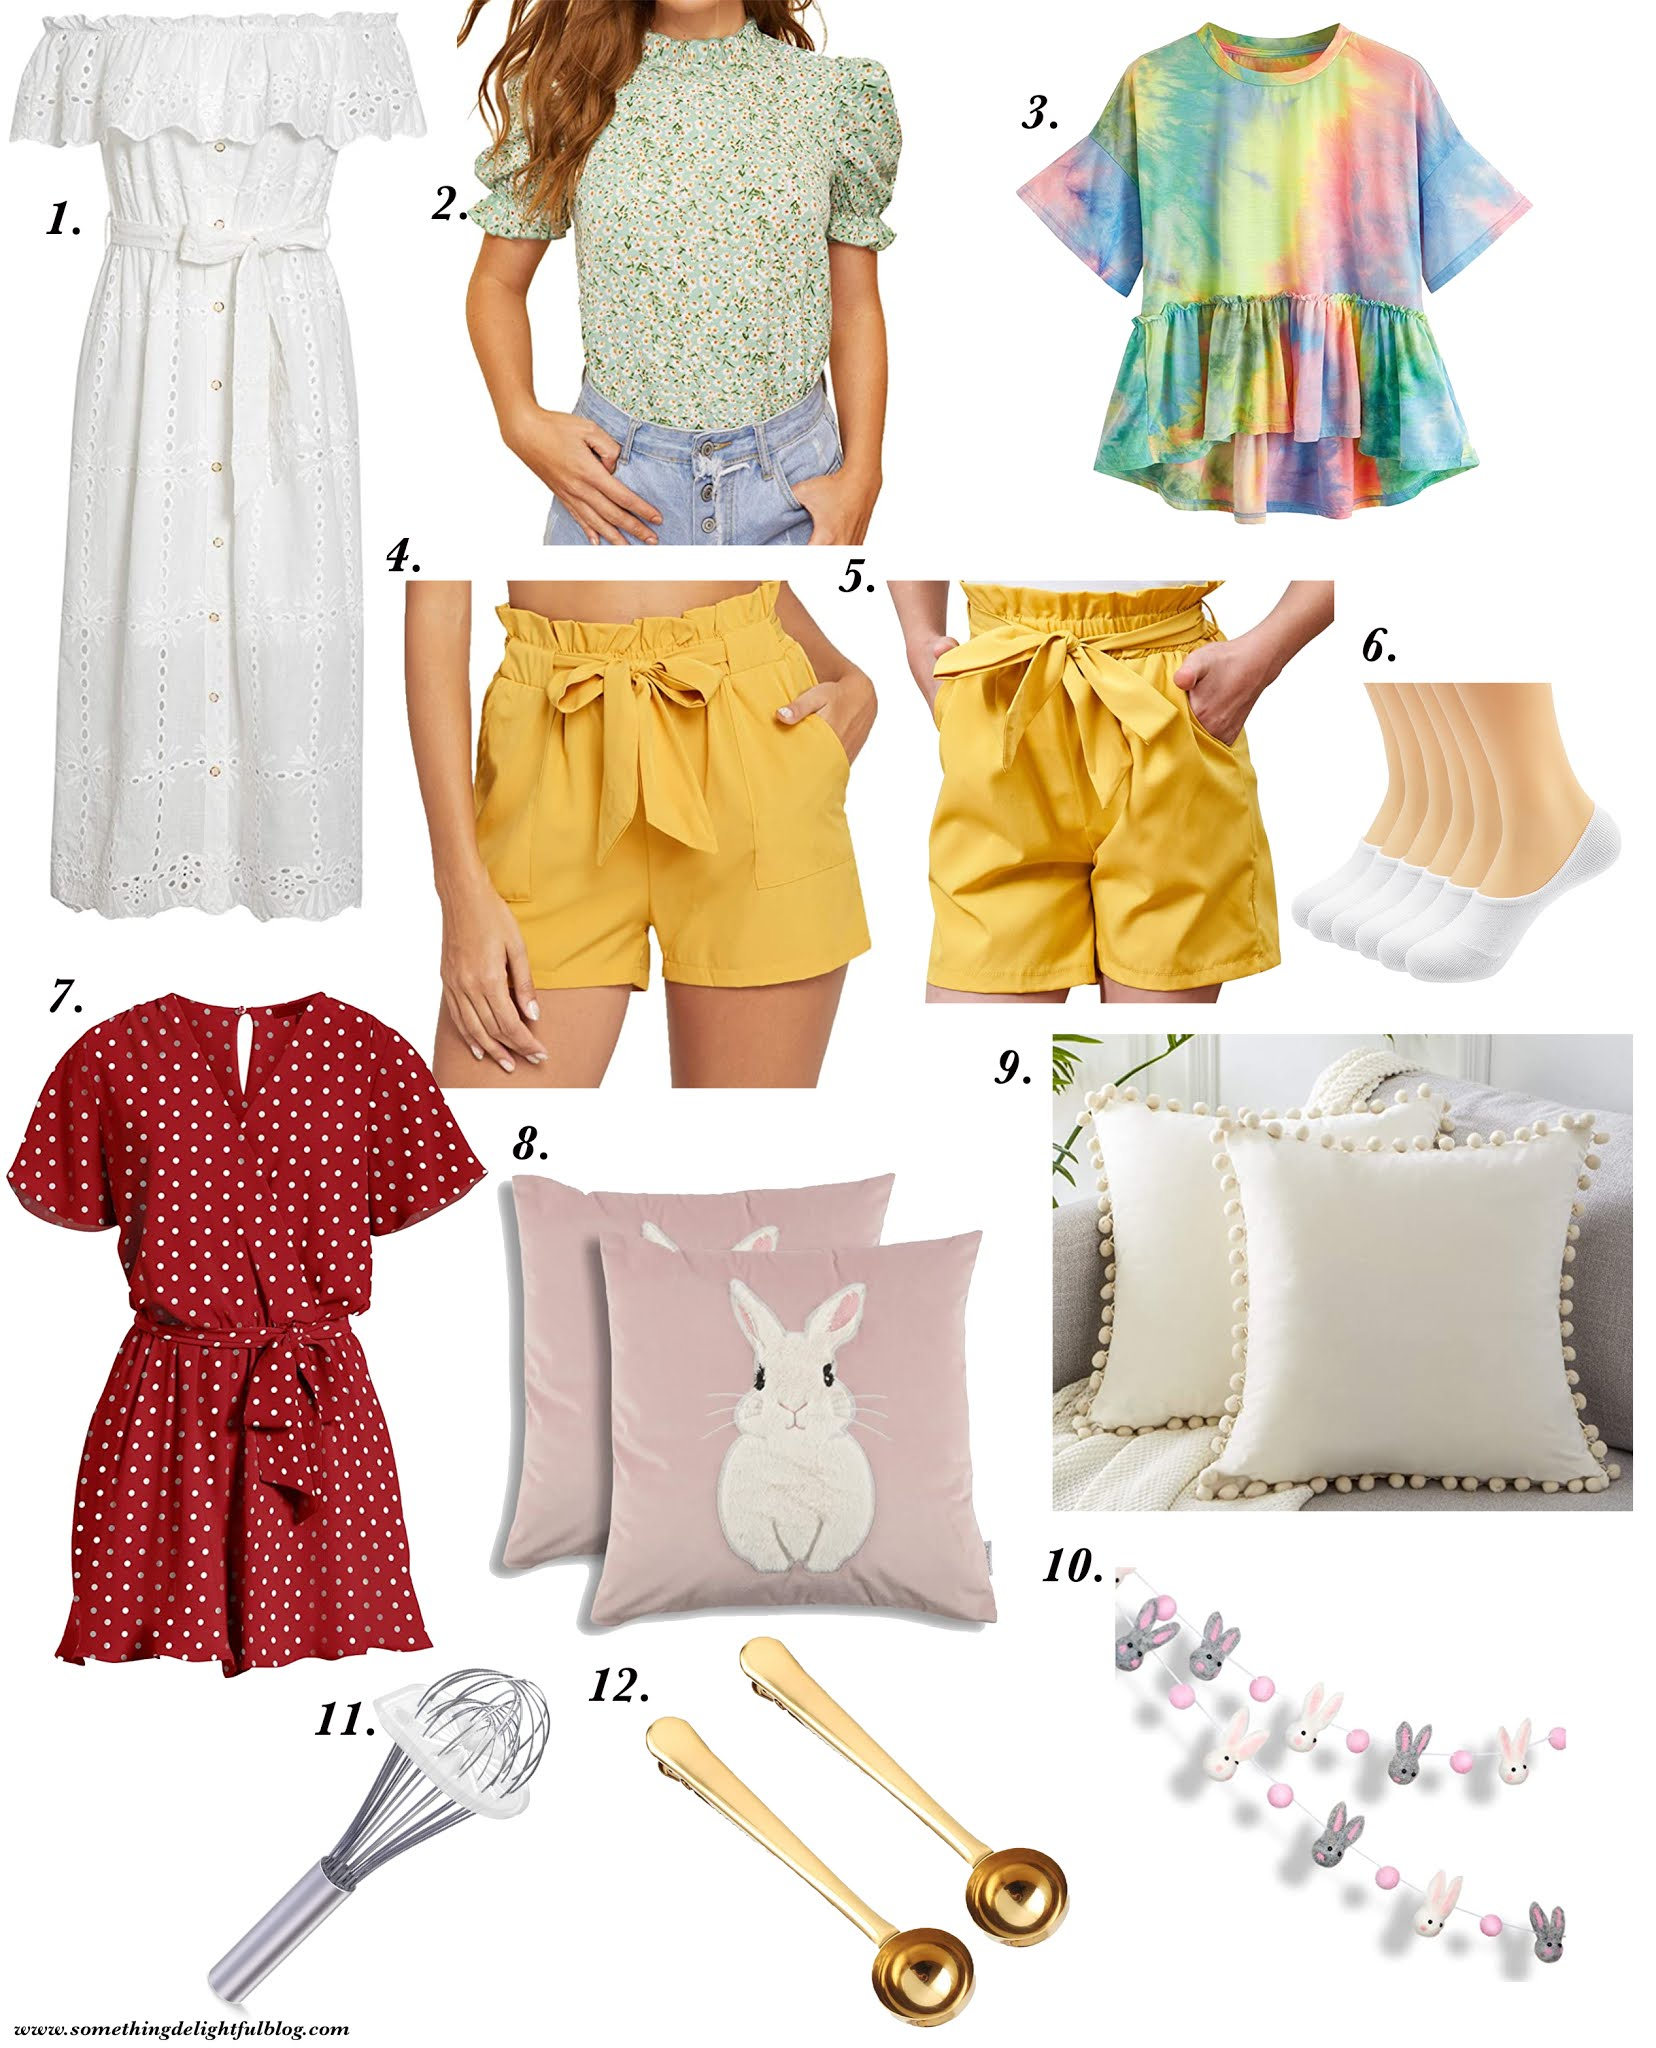 Weekly Amazon Finds: Volume Four - Something Delightful Blog #Amazonfinds #AmazonRoundup #AmazonFashion